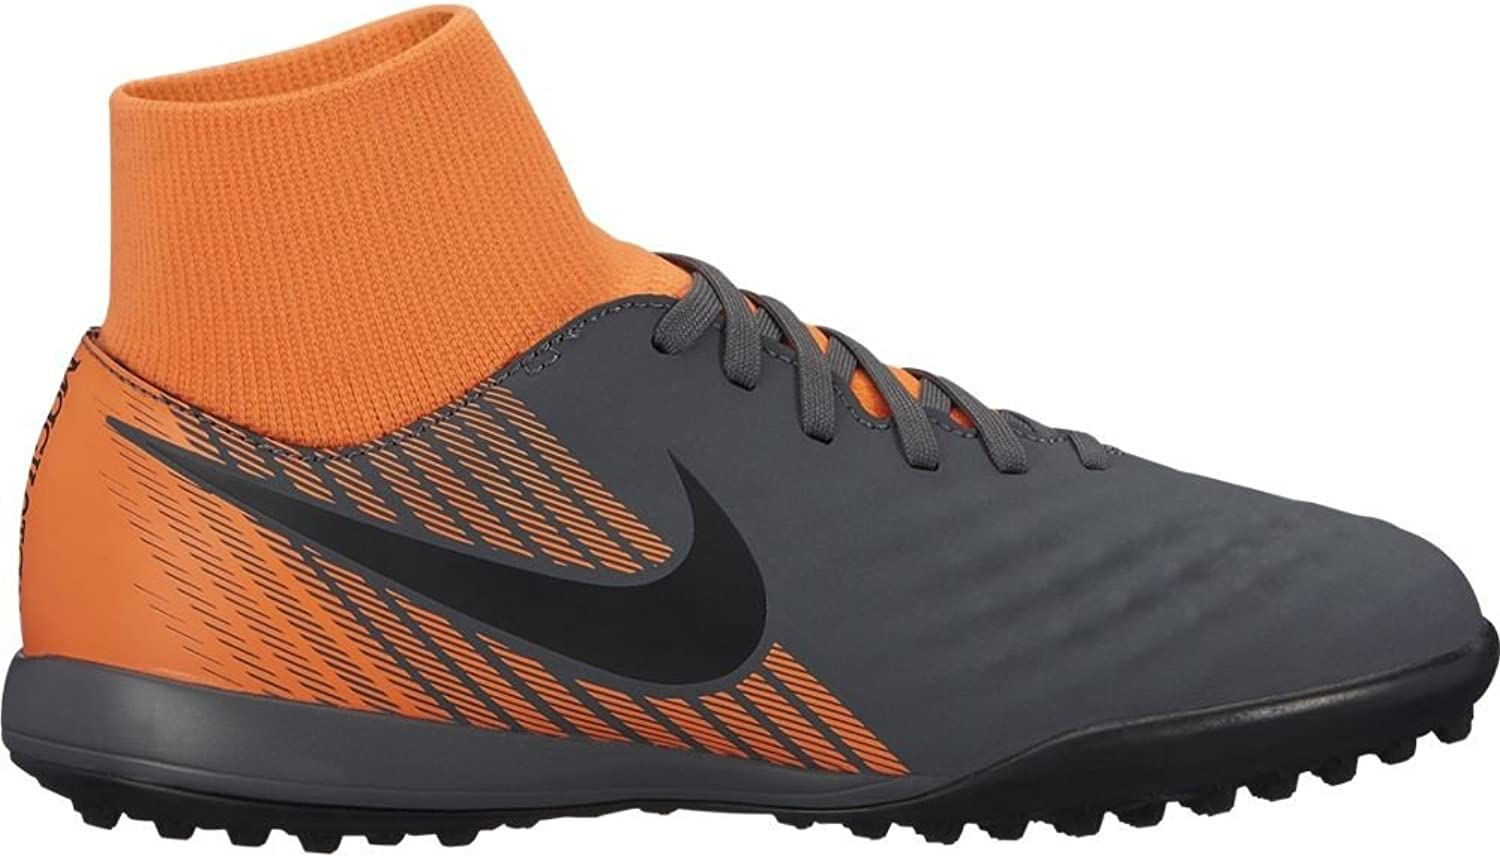 Nike Unisex Kids' Jr Obrax 2 Academy Df Tf Fitness shoes